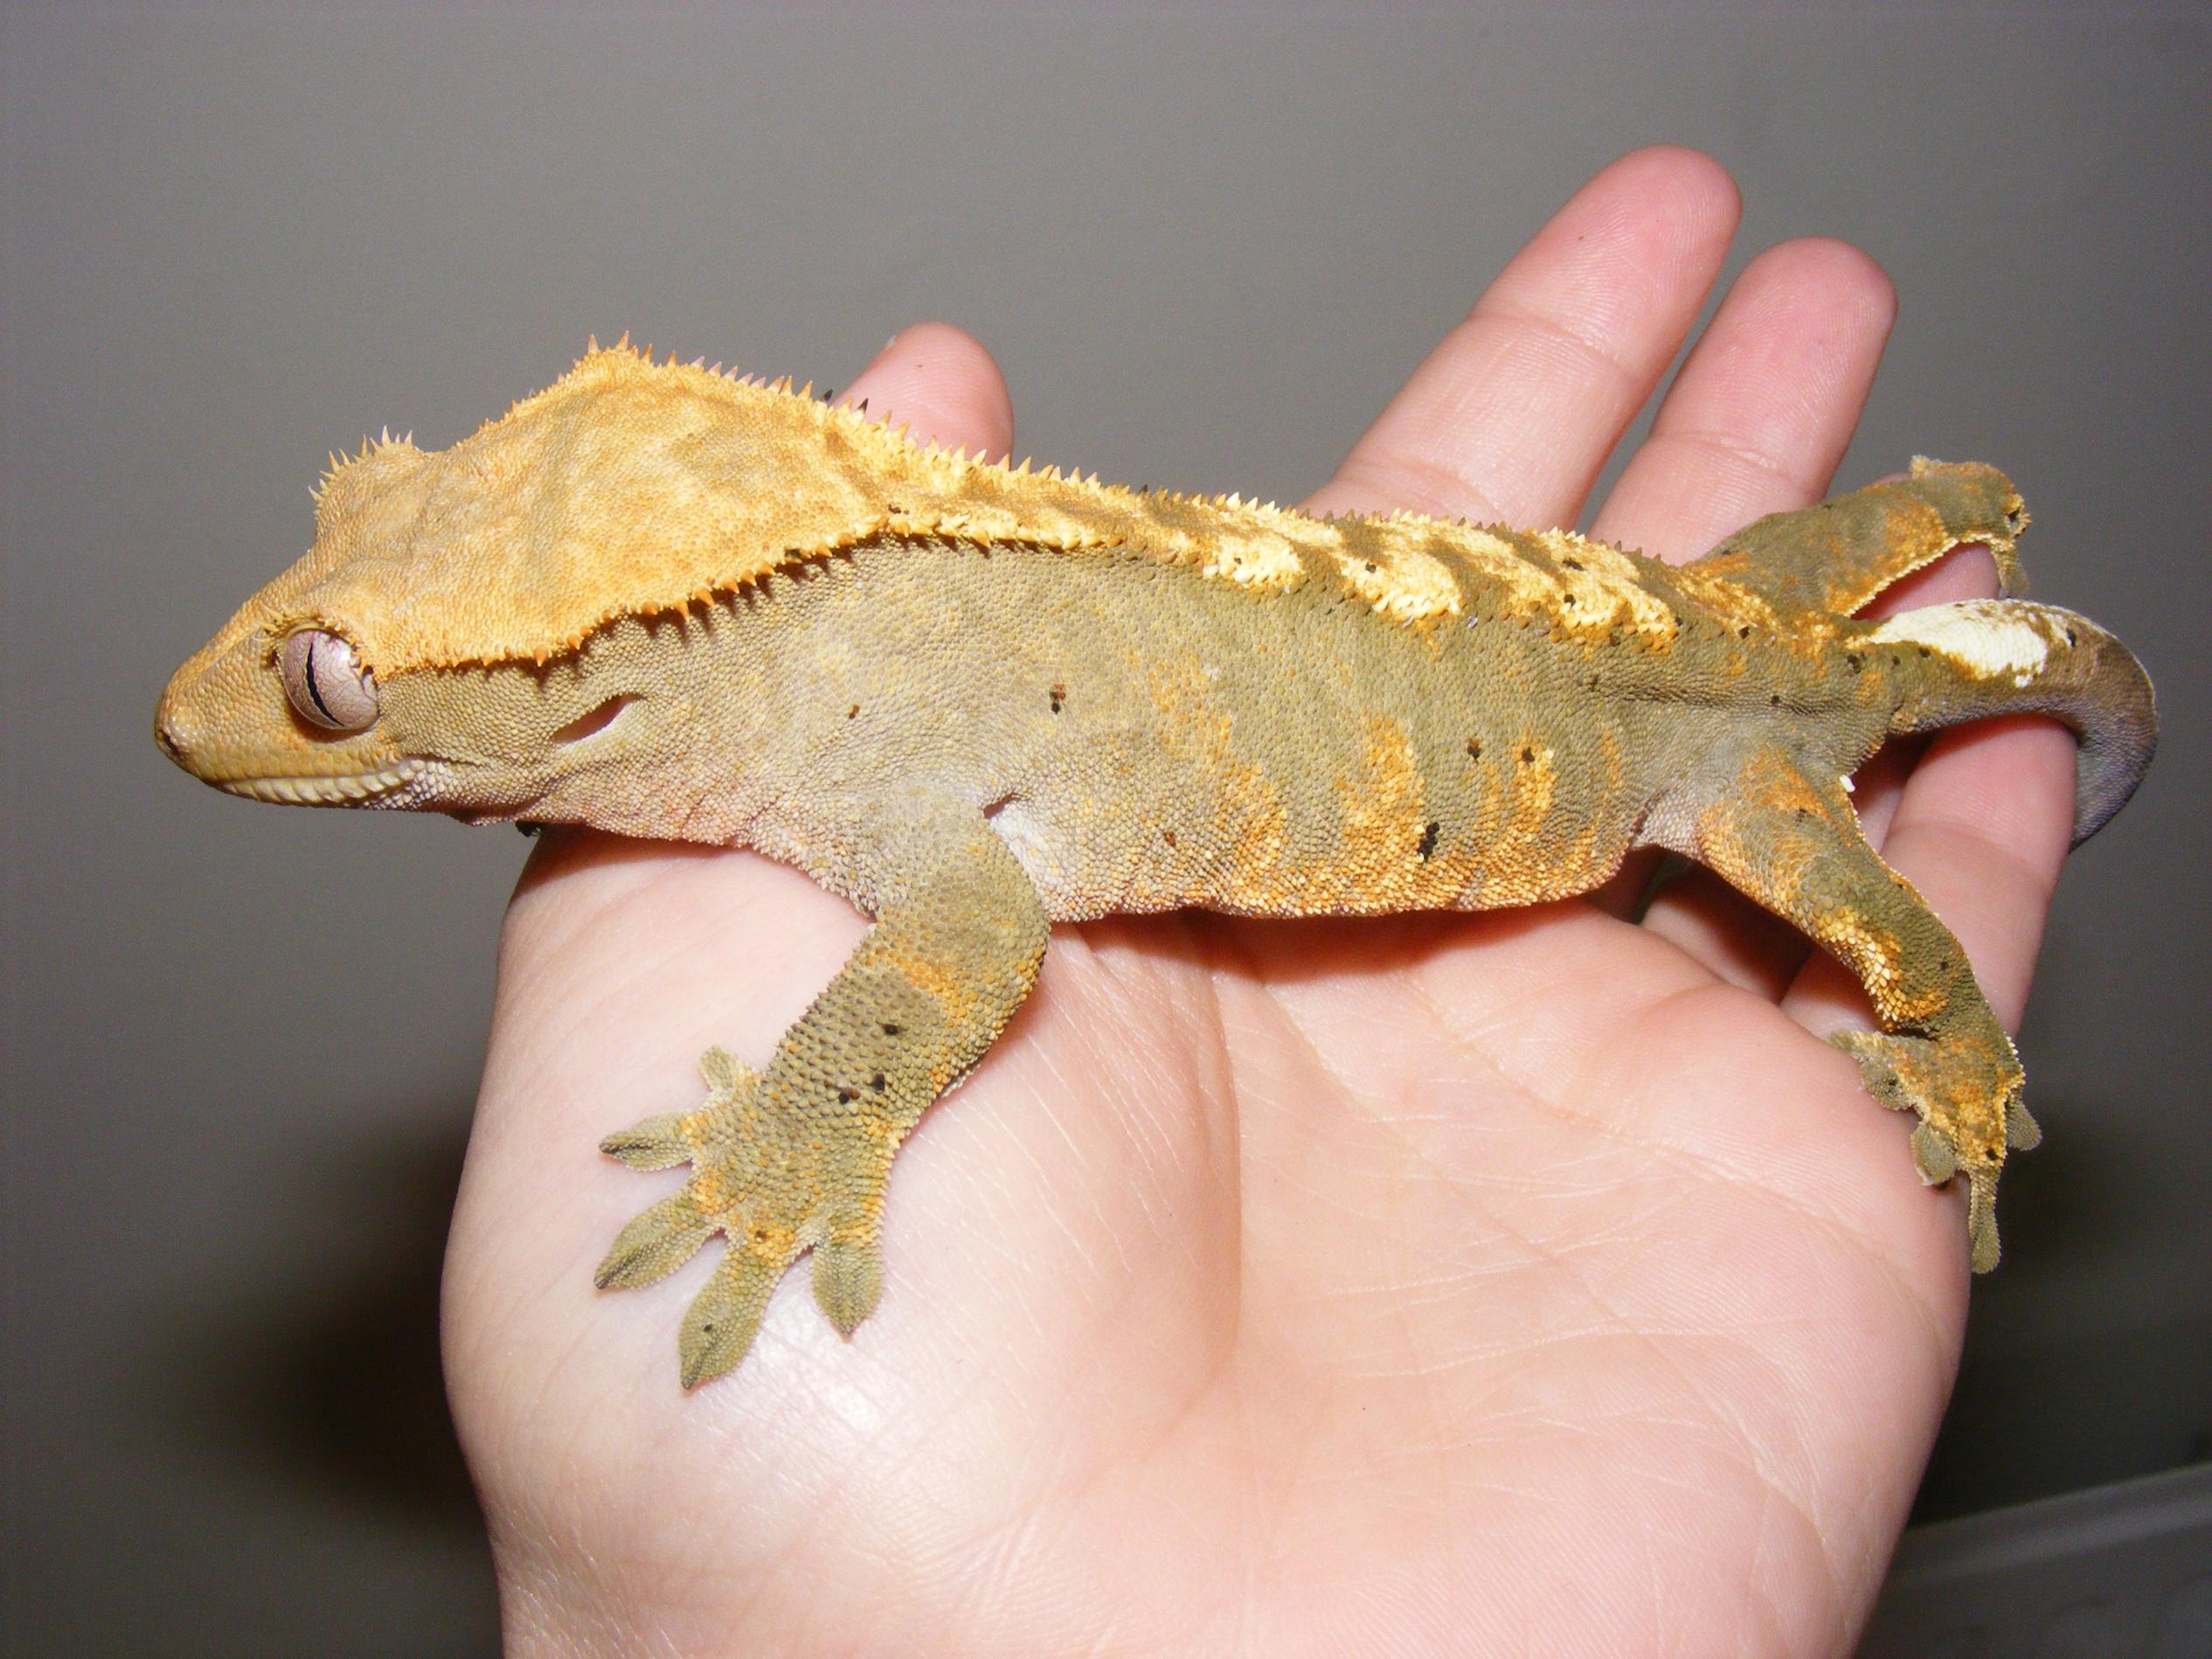 You want a healthy crested gecko? Follow the tips! Page 136